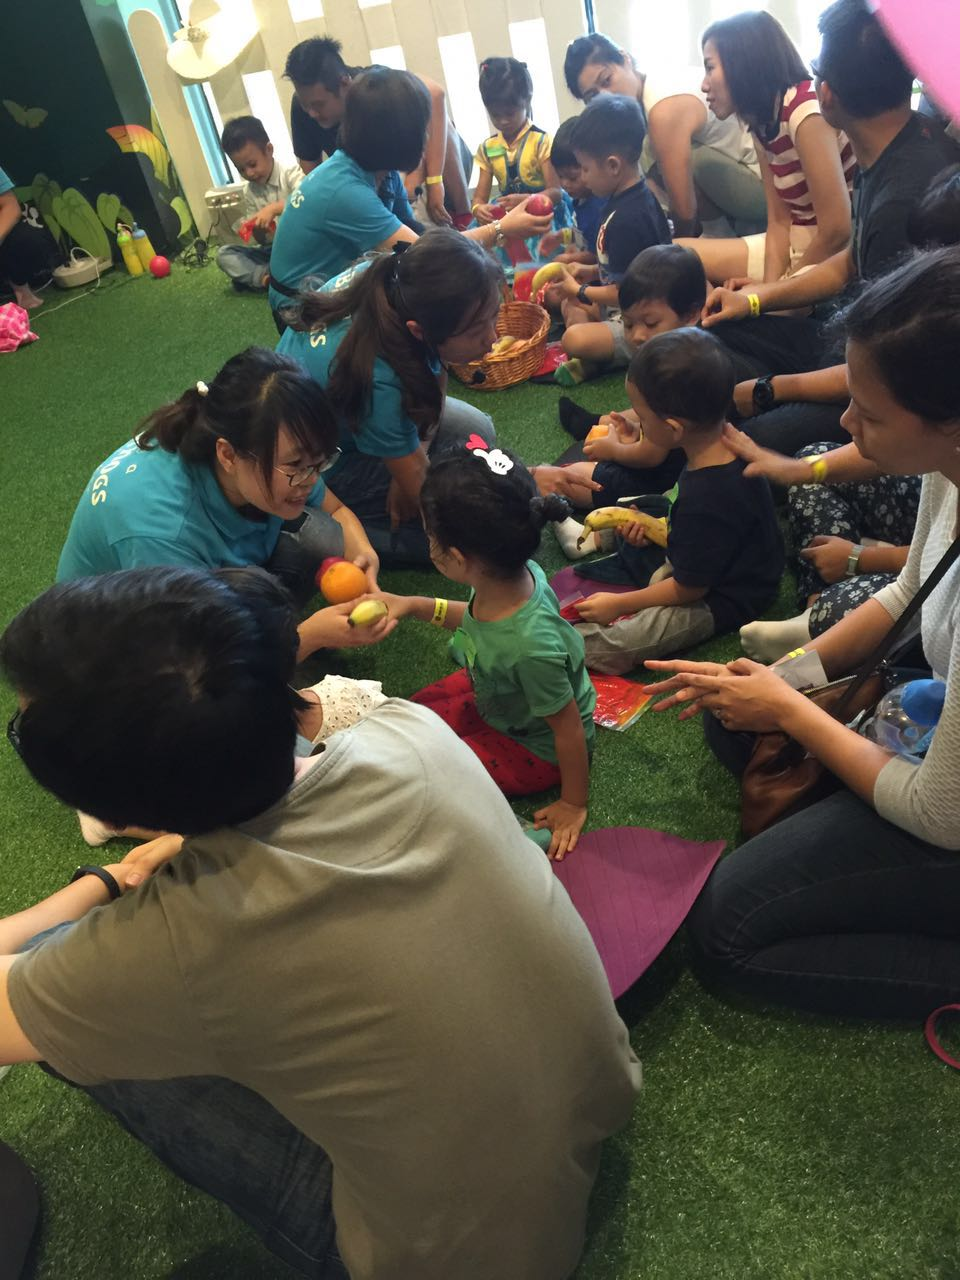 BibiNogs' Mandarin teachers engaged children and parents with exploration and hands-on craft activities